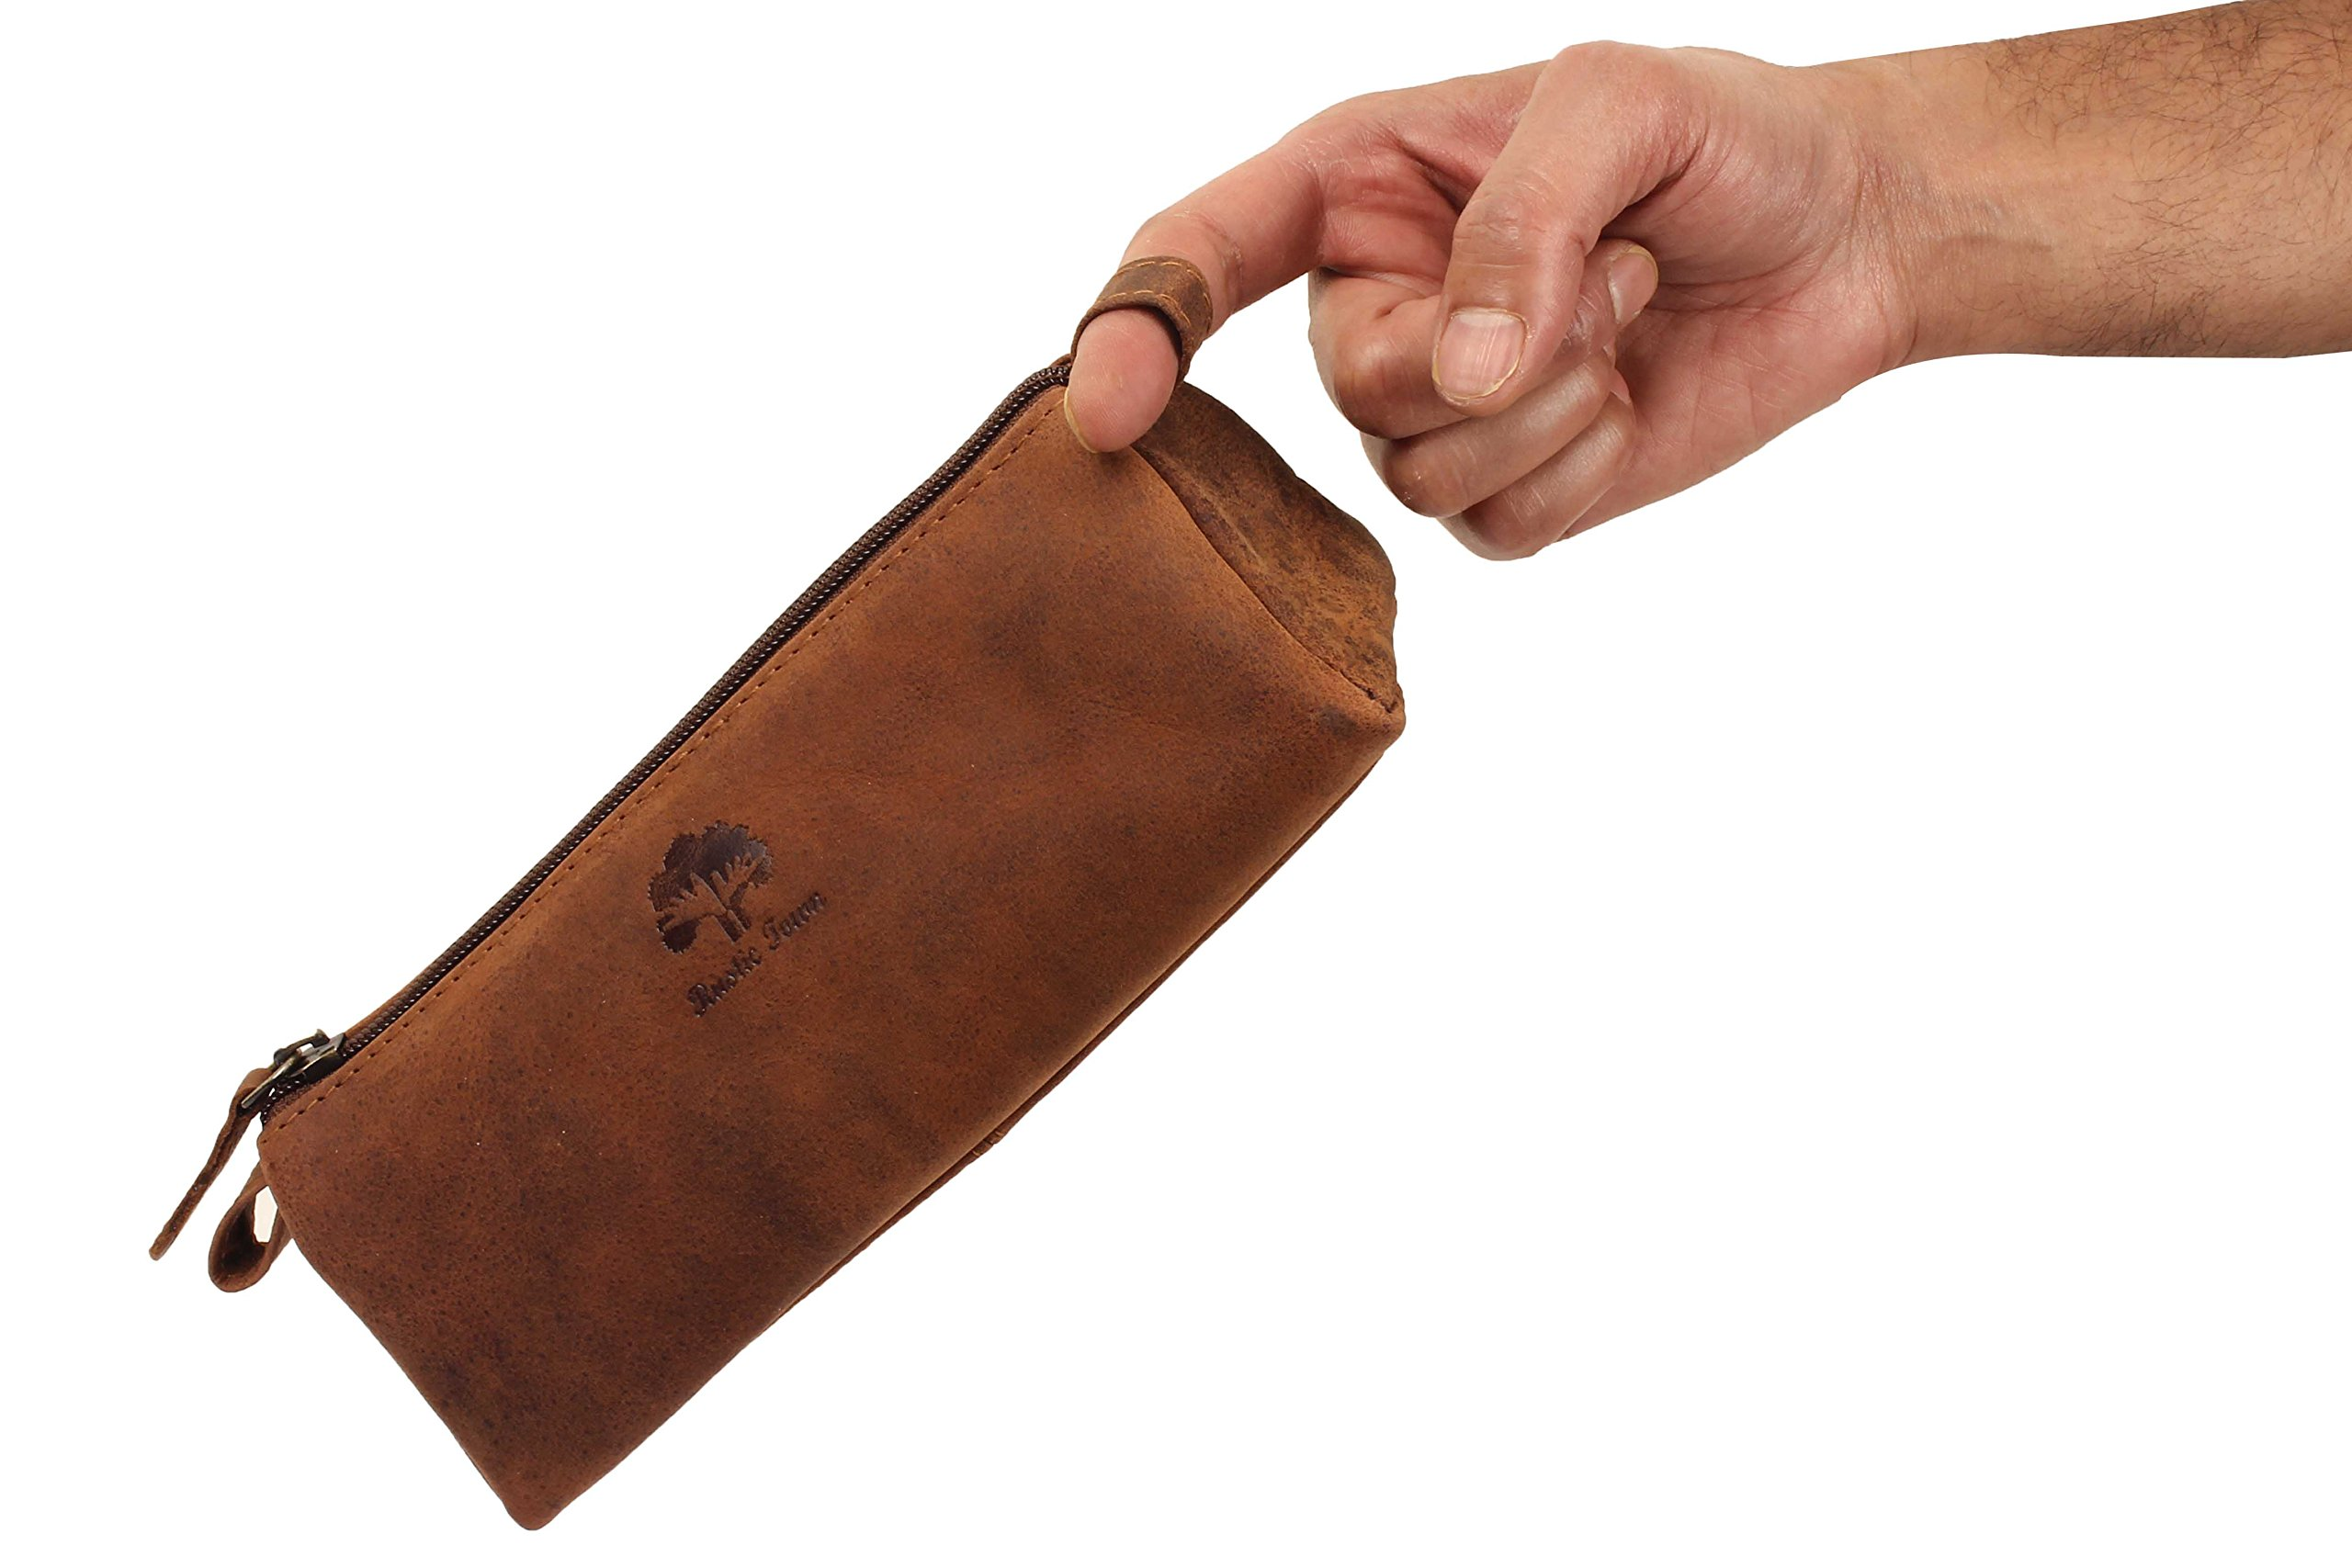 Leather Pencil Case - Zippered Pen Pouch for School, Work & Office by Rustic Town by RusticTown (Image #8)